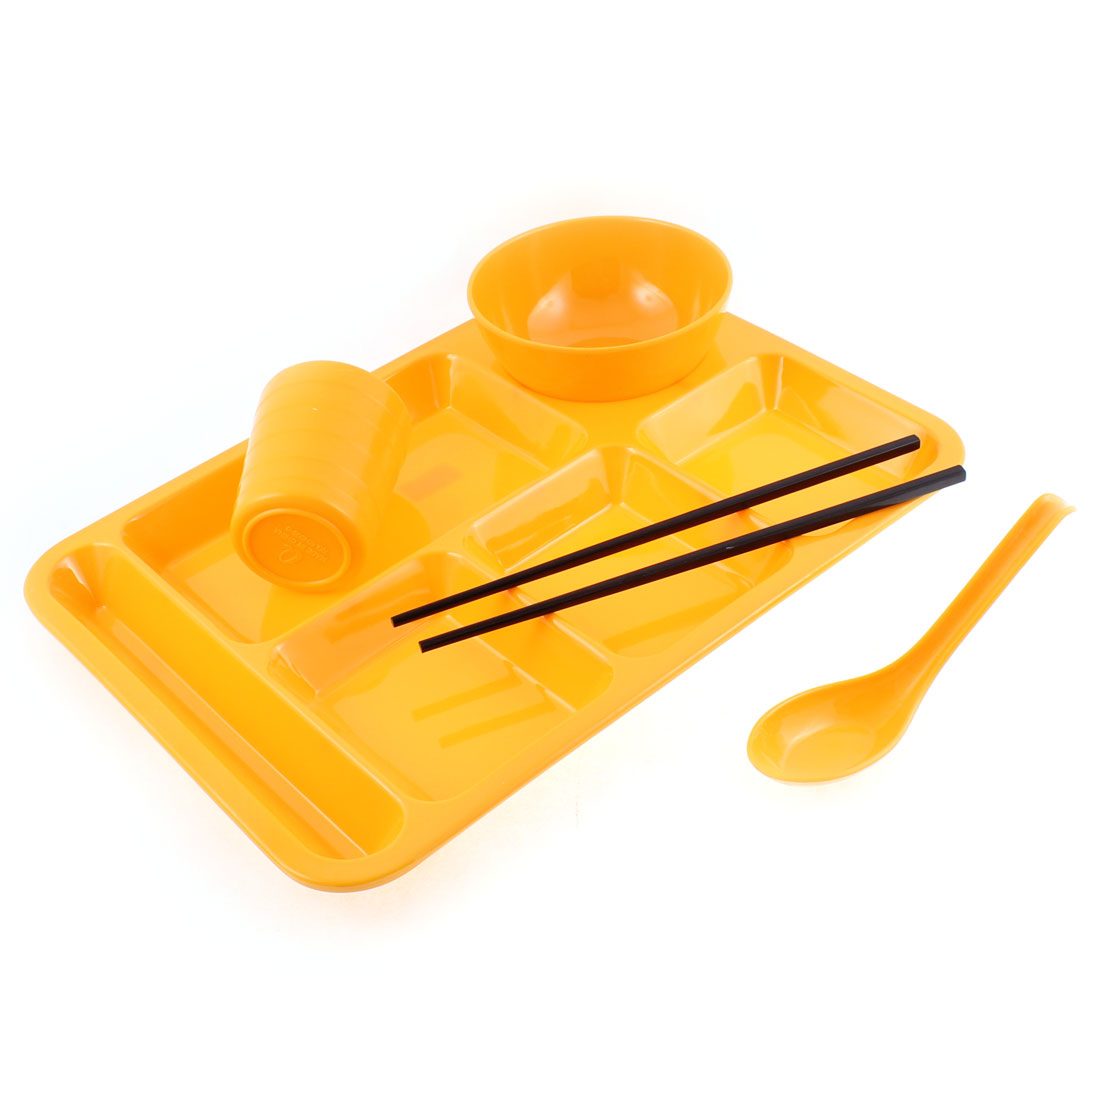 School Restaurant 6 Compartments Divided Plate Bowl Spoon Chopsticks Cup Orange 5 in 1